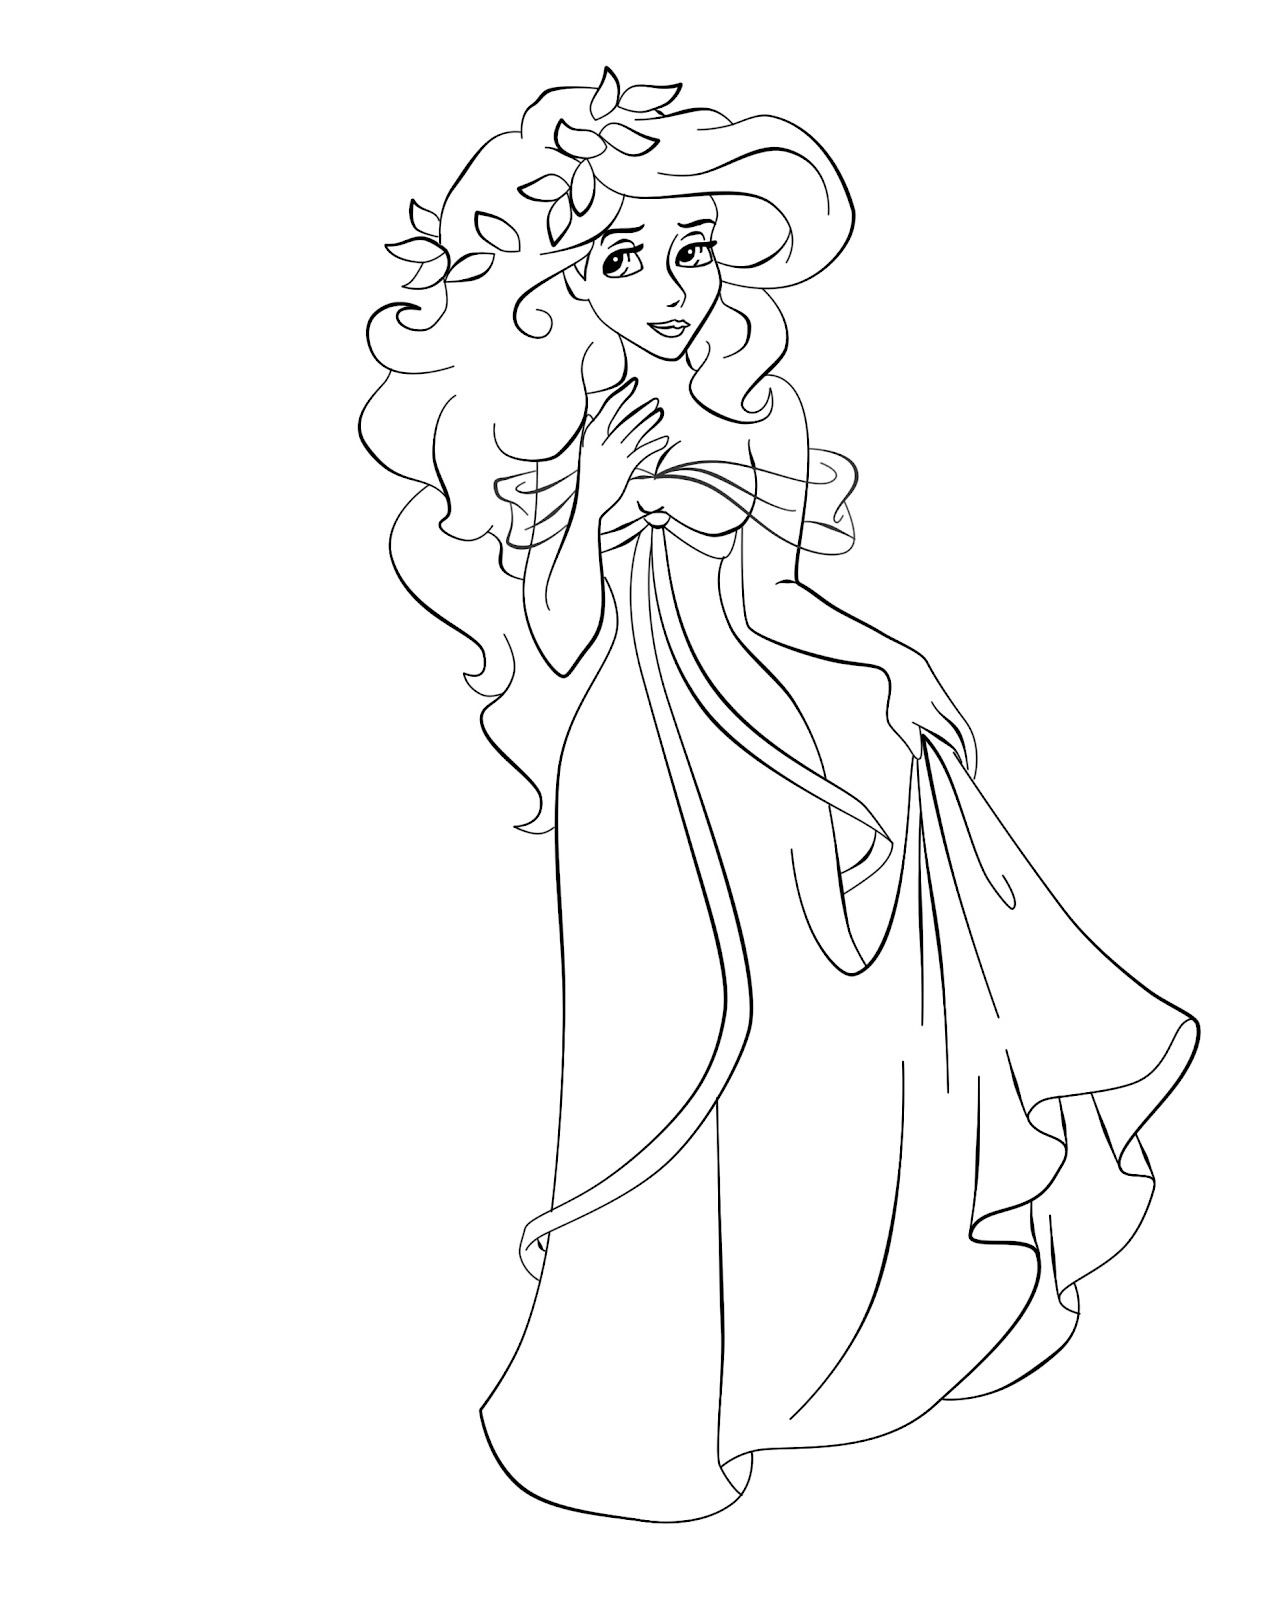 Disney Princess Giselle Coloring Page Rotus Pinterest Disney